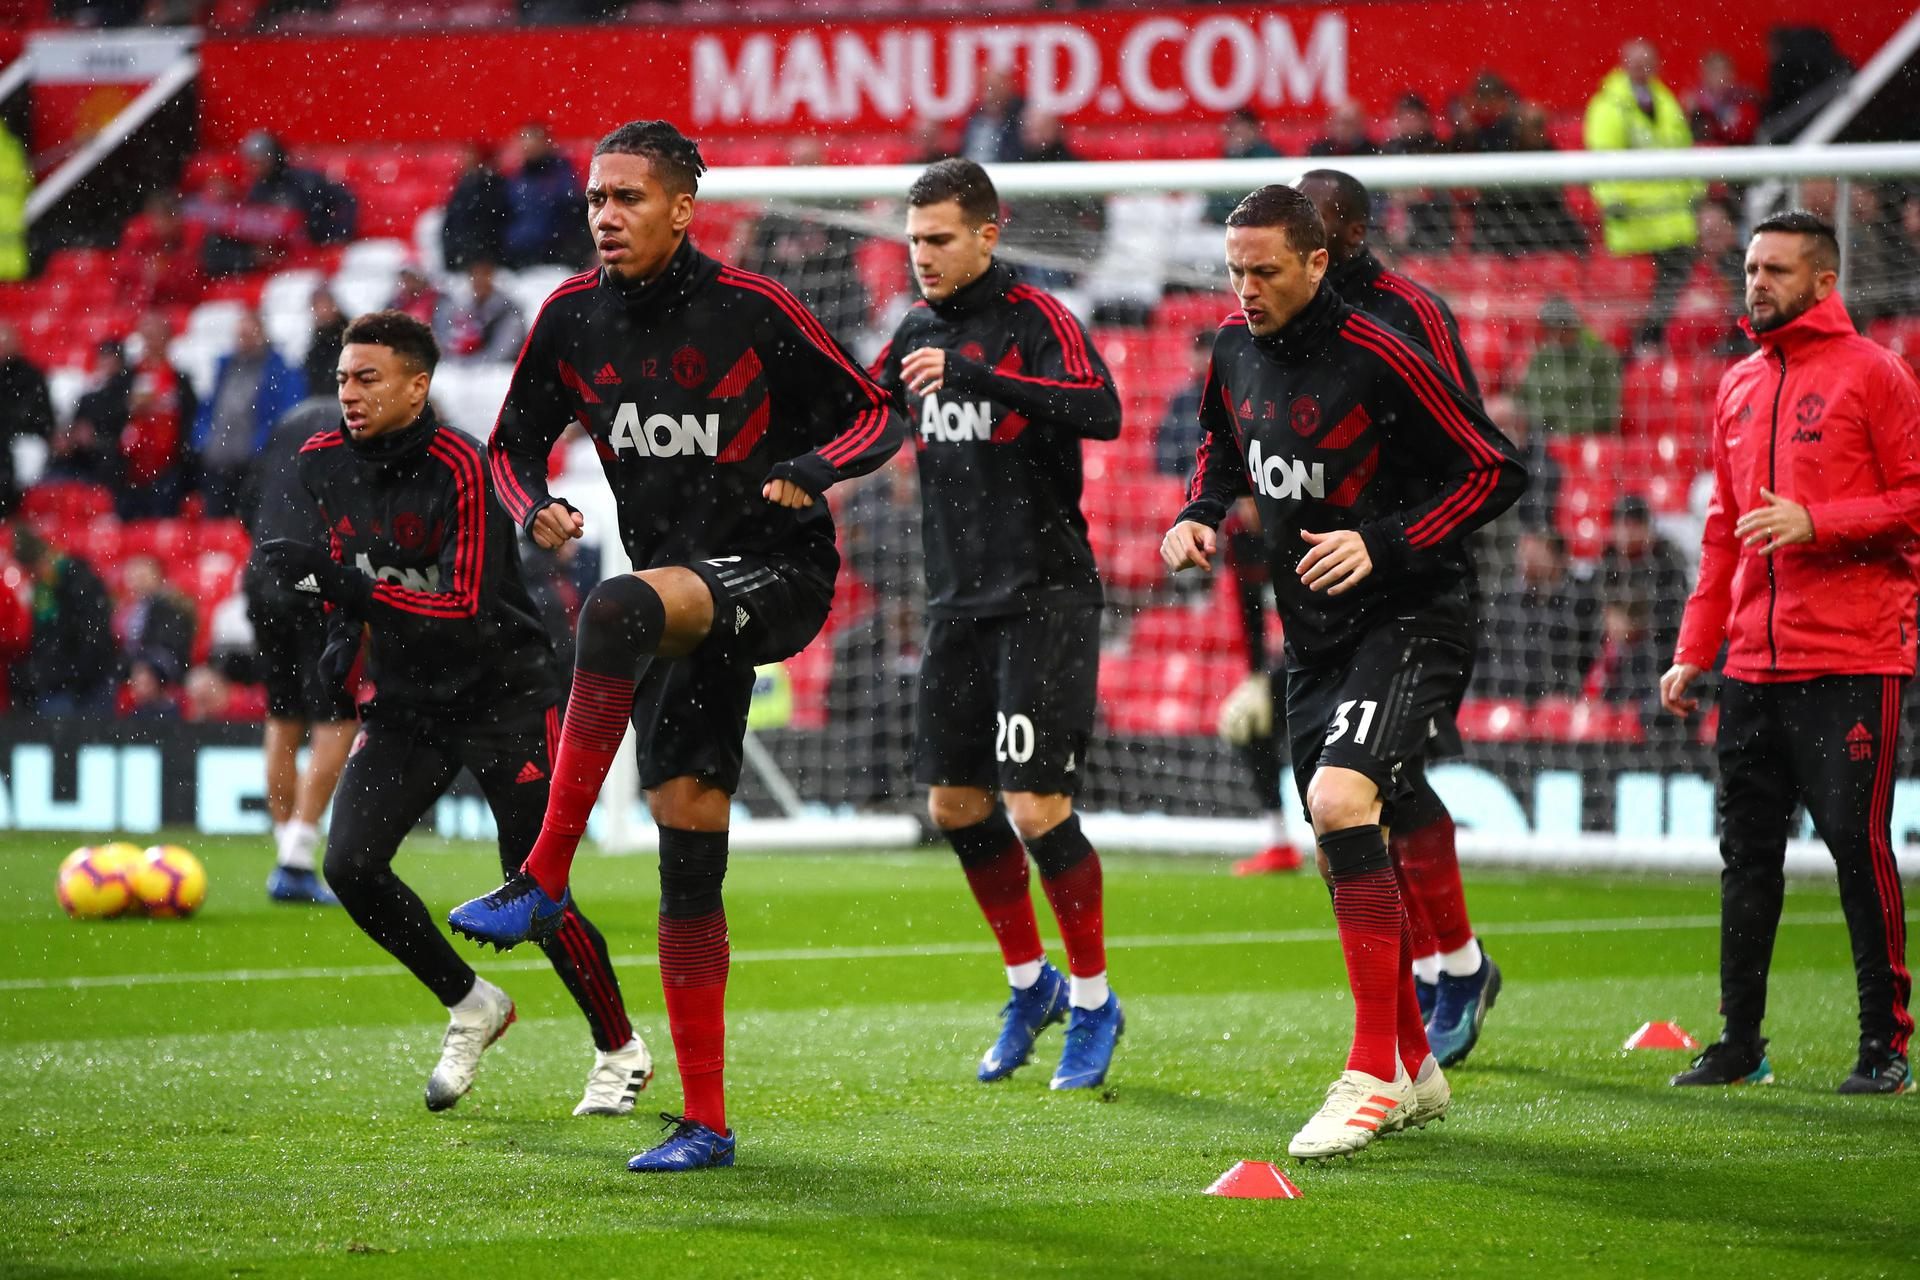 Lingard, Smalling, Dalot and Matic warm up before a match at Old Trafford